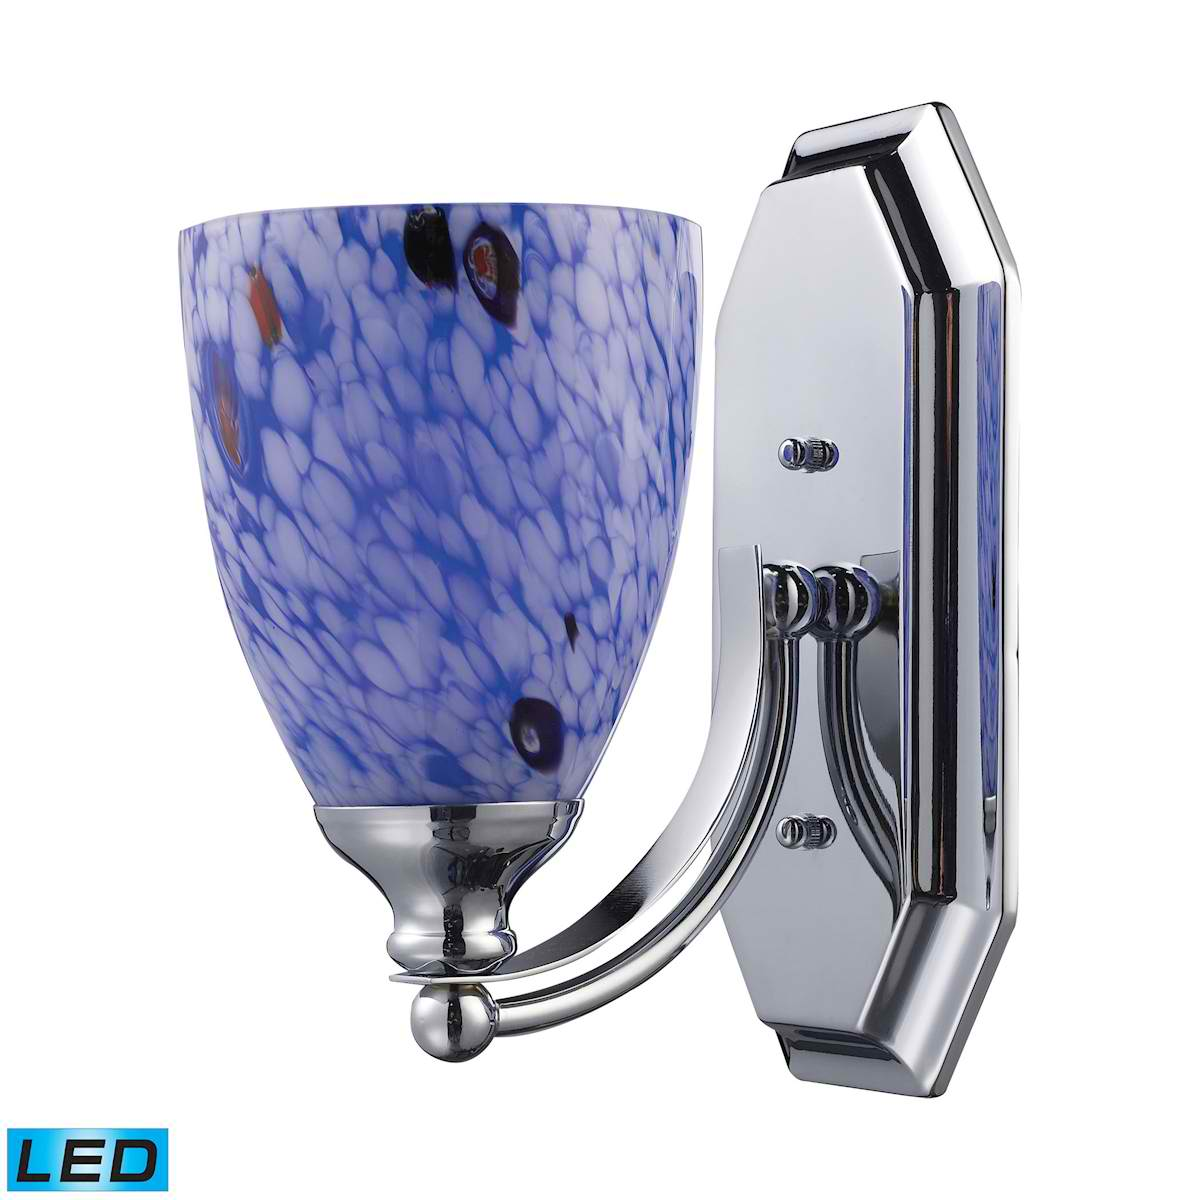 1 Light Vanity in Polished Chrome and Starburst Blue Glass - LED Offering Up To 800 Lumens (60 Watt Equivalent)